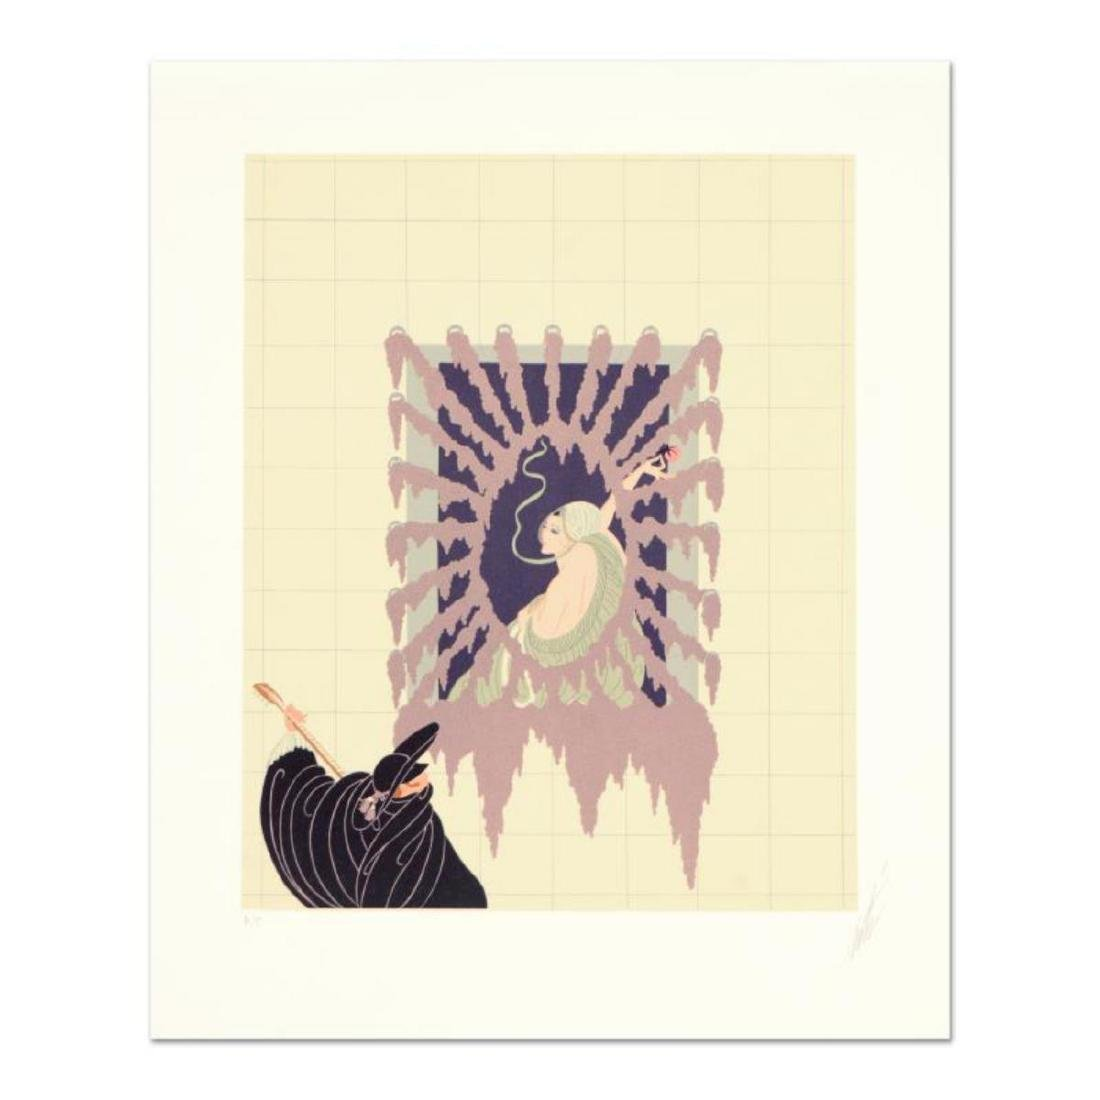 "Erte (1892-1990) - ""La Serenade"" Limited Edition"